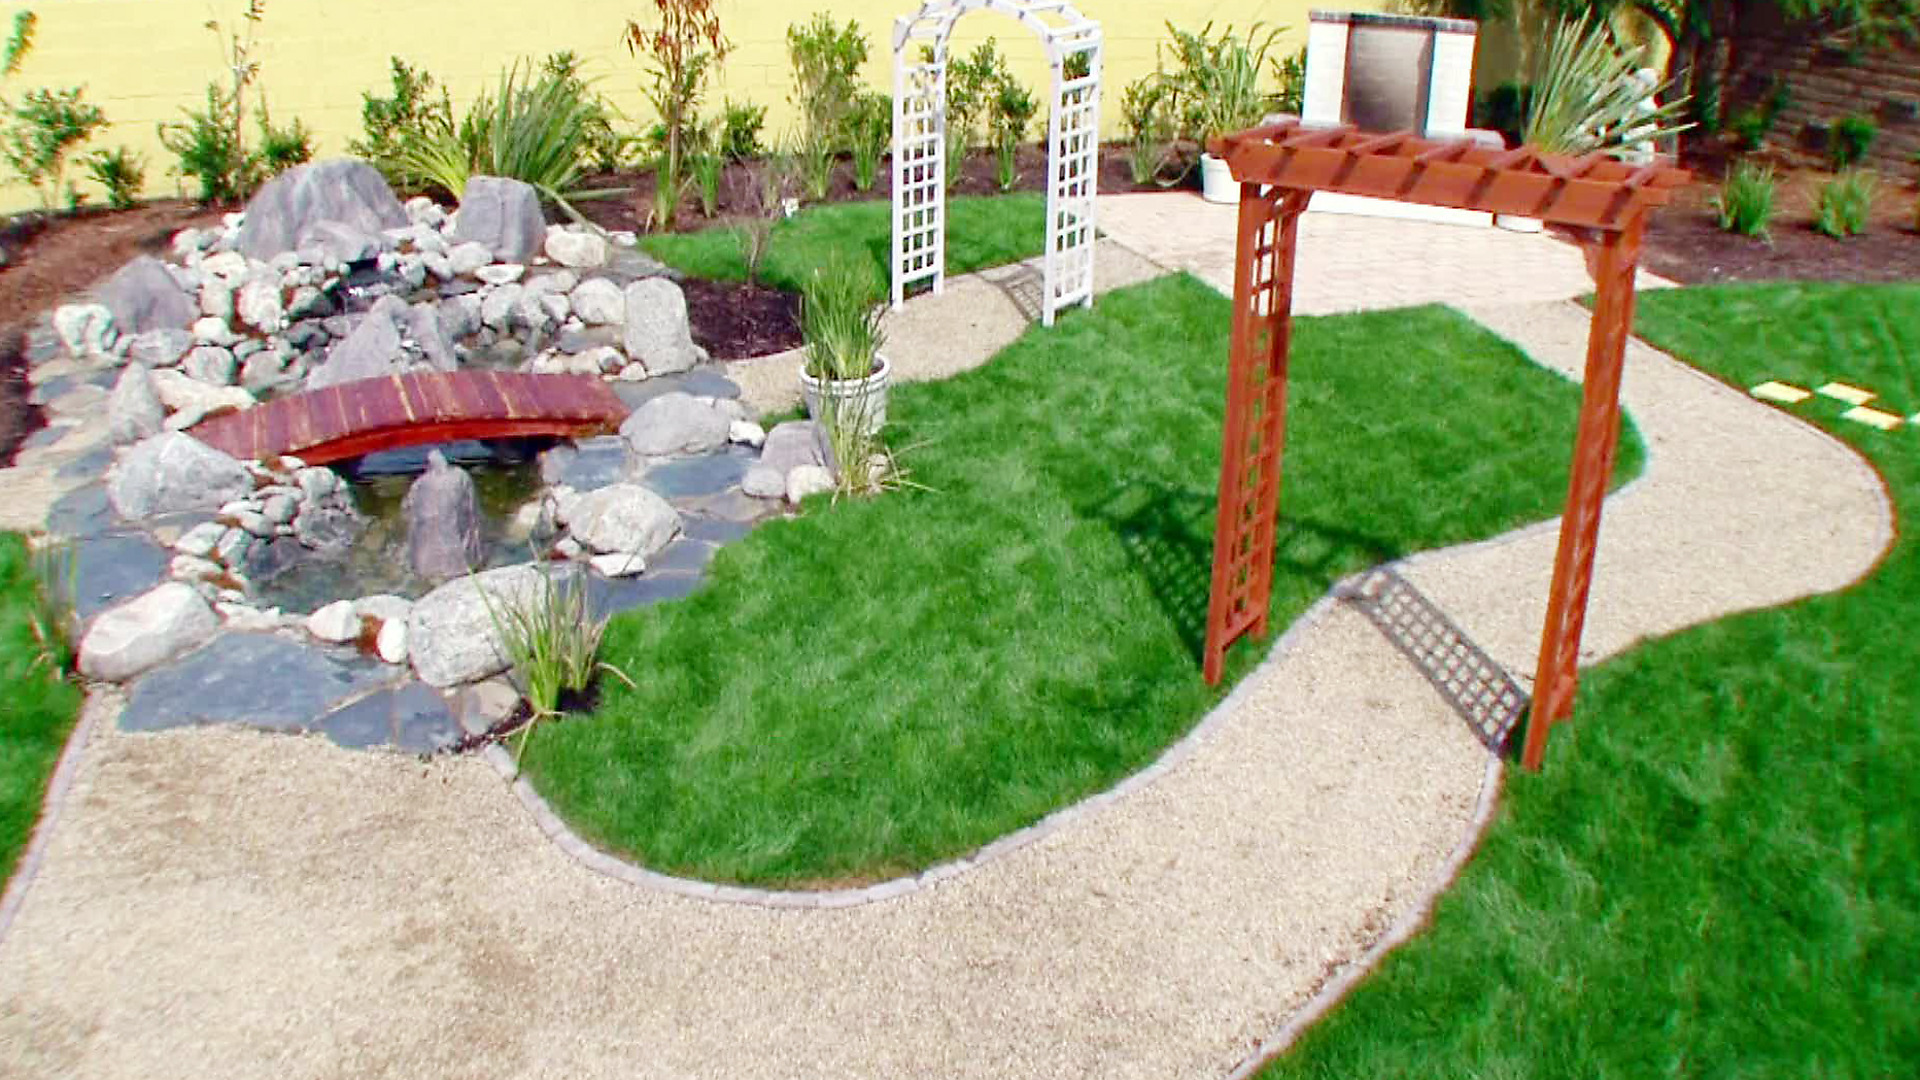 Quality Garden Clean Up Services For Your Garden